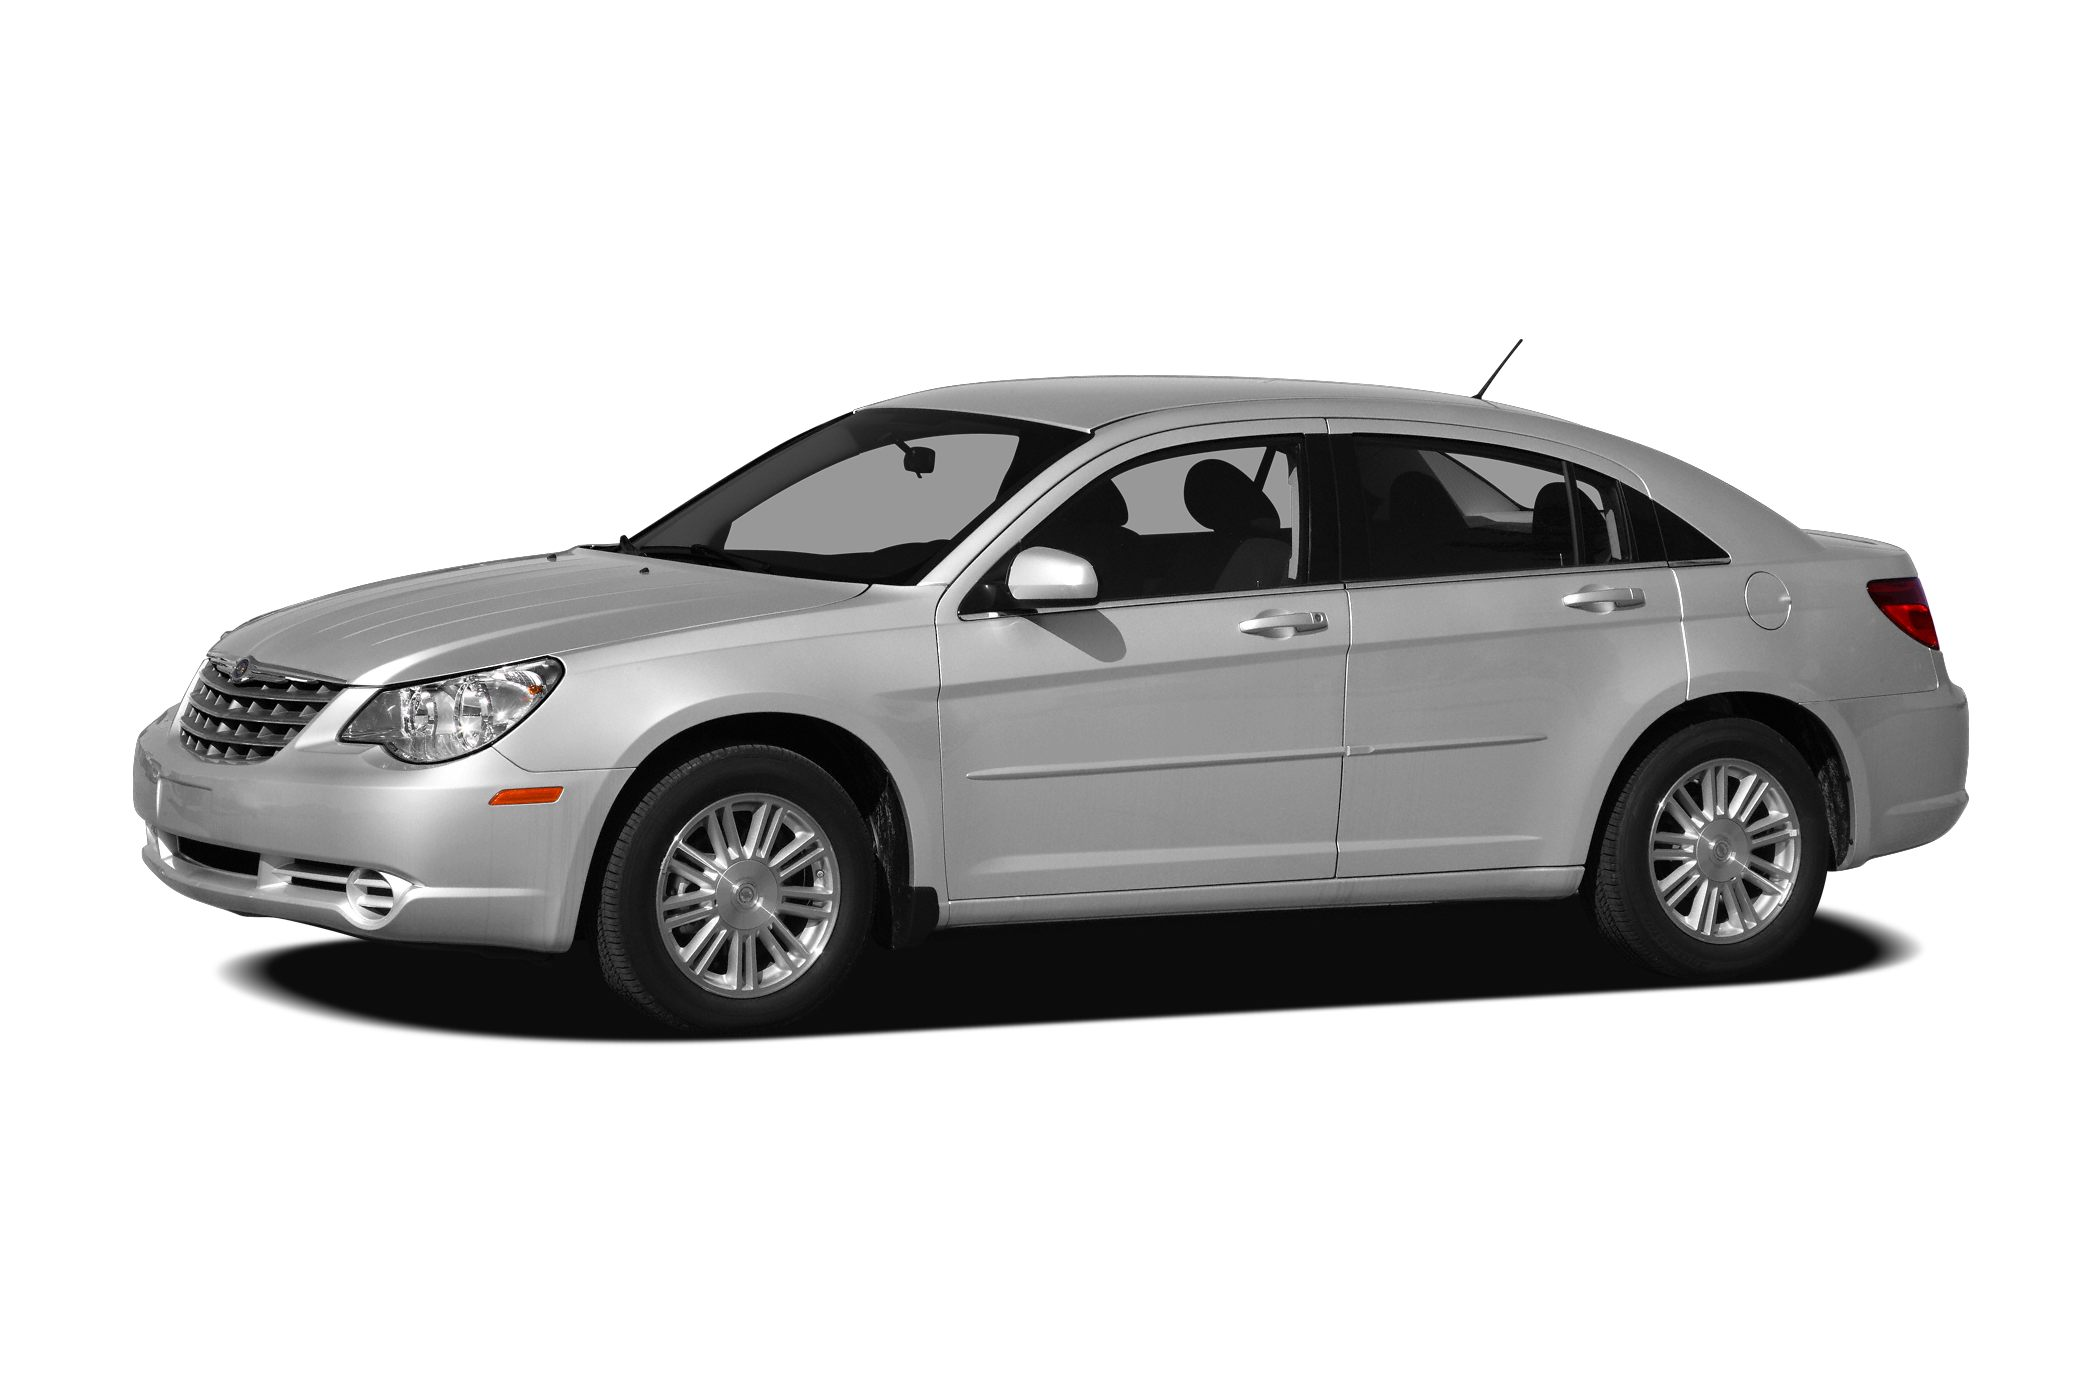 2008 Chrysler Sebring LX Miles 133624Color Bright Silver Metallic Stock 170285A VIN 1C3LC46K